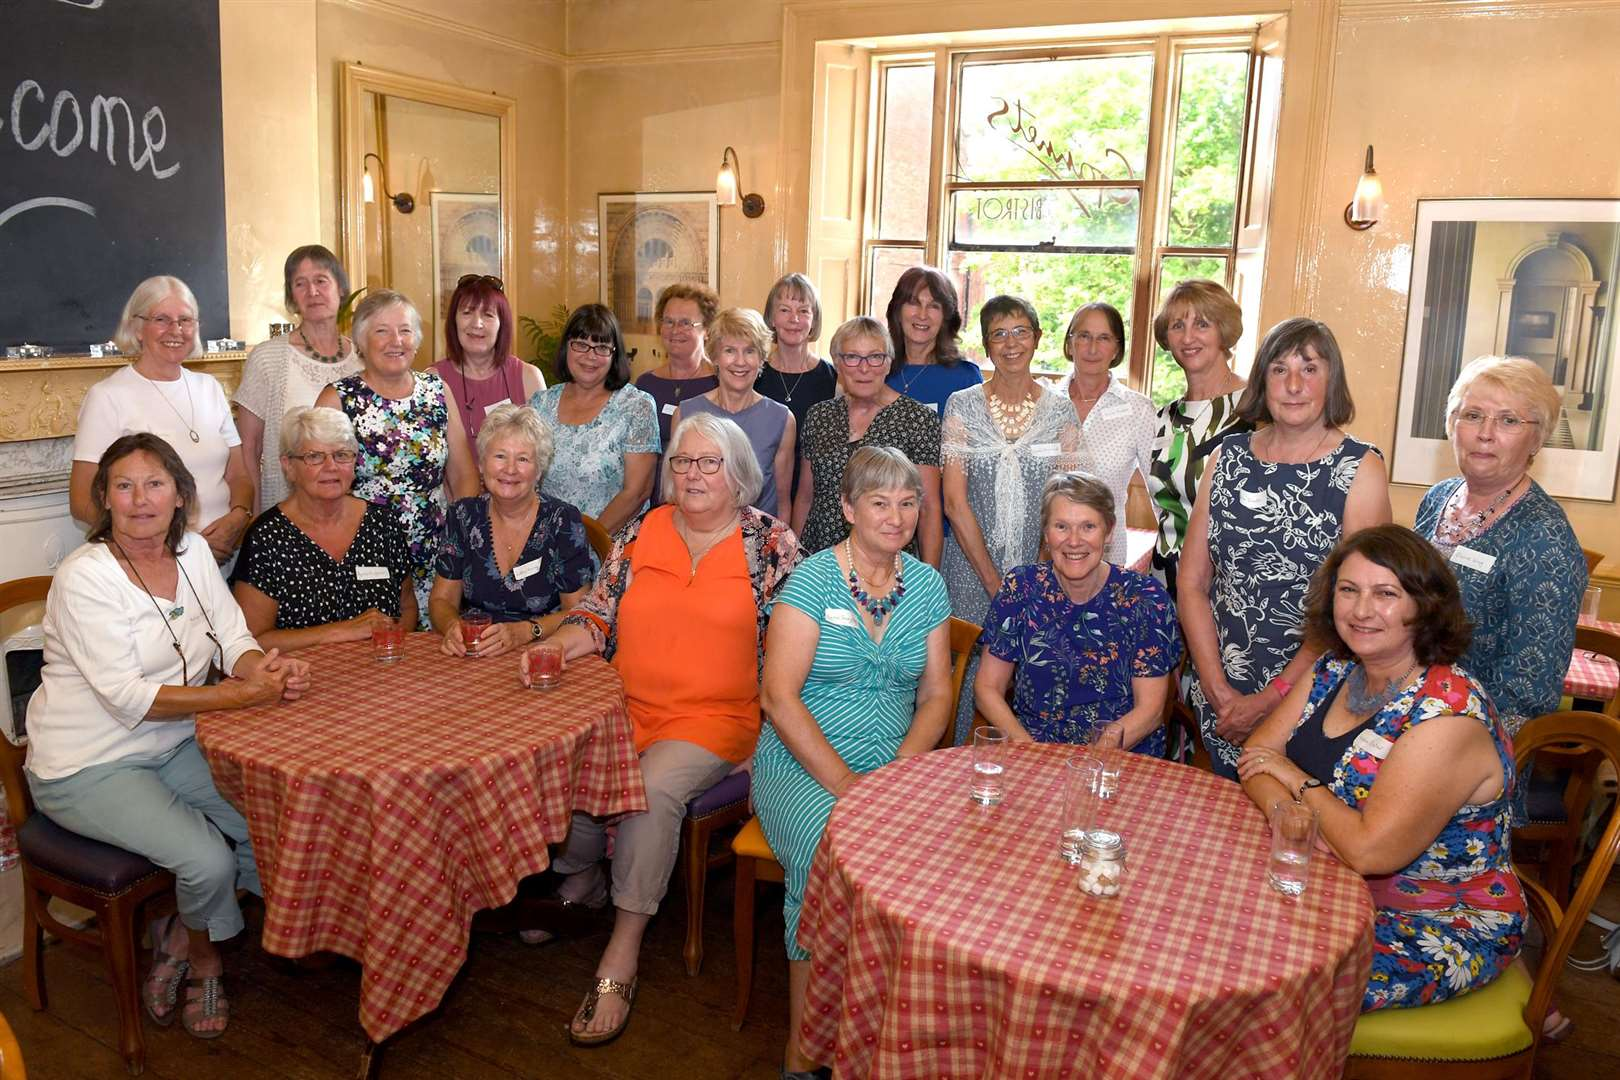 The former pupils of Newark's Lilley and Stone Girls' High School together again — 50 years after leaving the sixth form.